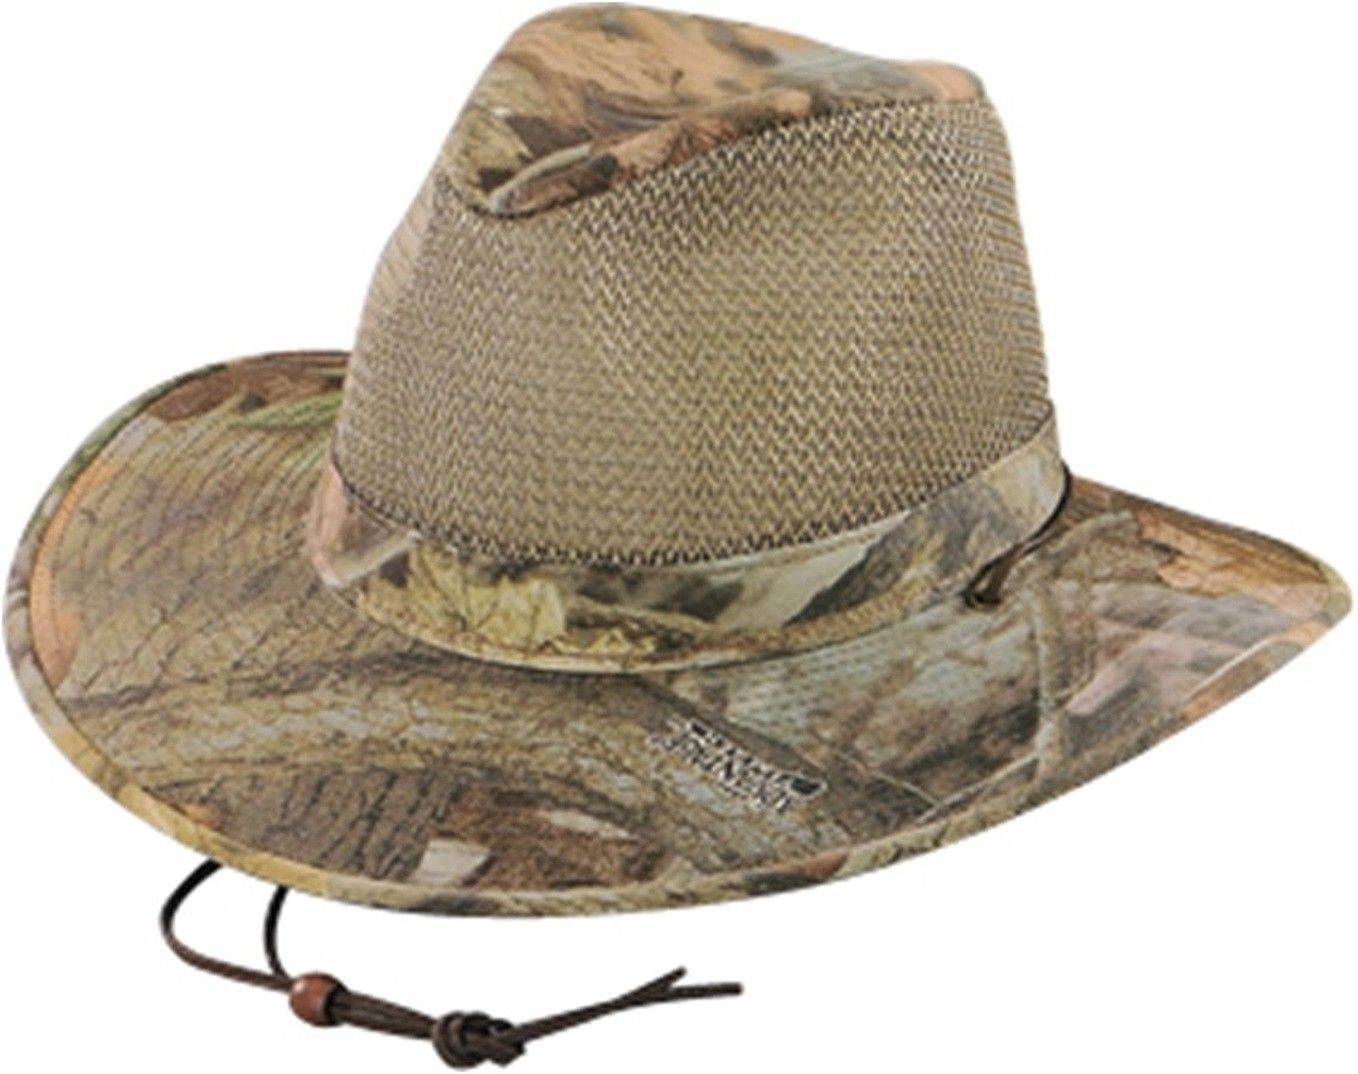 bd6ab336be8 NEW Henschel Hats Lined Mossy Timber BREEZER and 50 similar items. 57